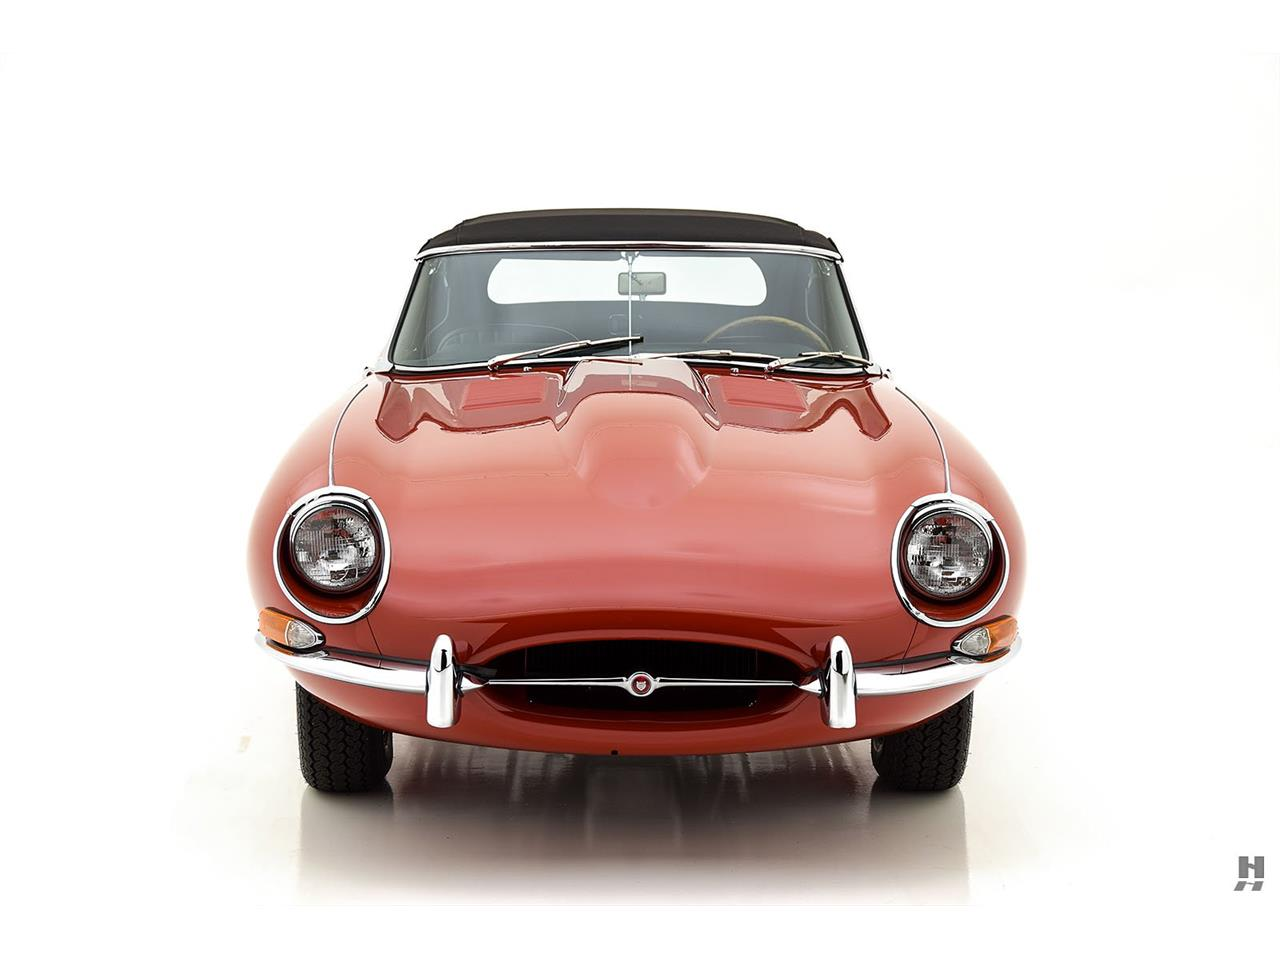 Large Picture of Classic 1968 Jaguar E-Type - $129,500.00 Offered by Hyman Ltd. Classic Cars - Q3BR